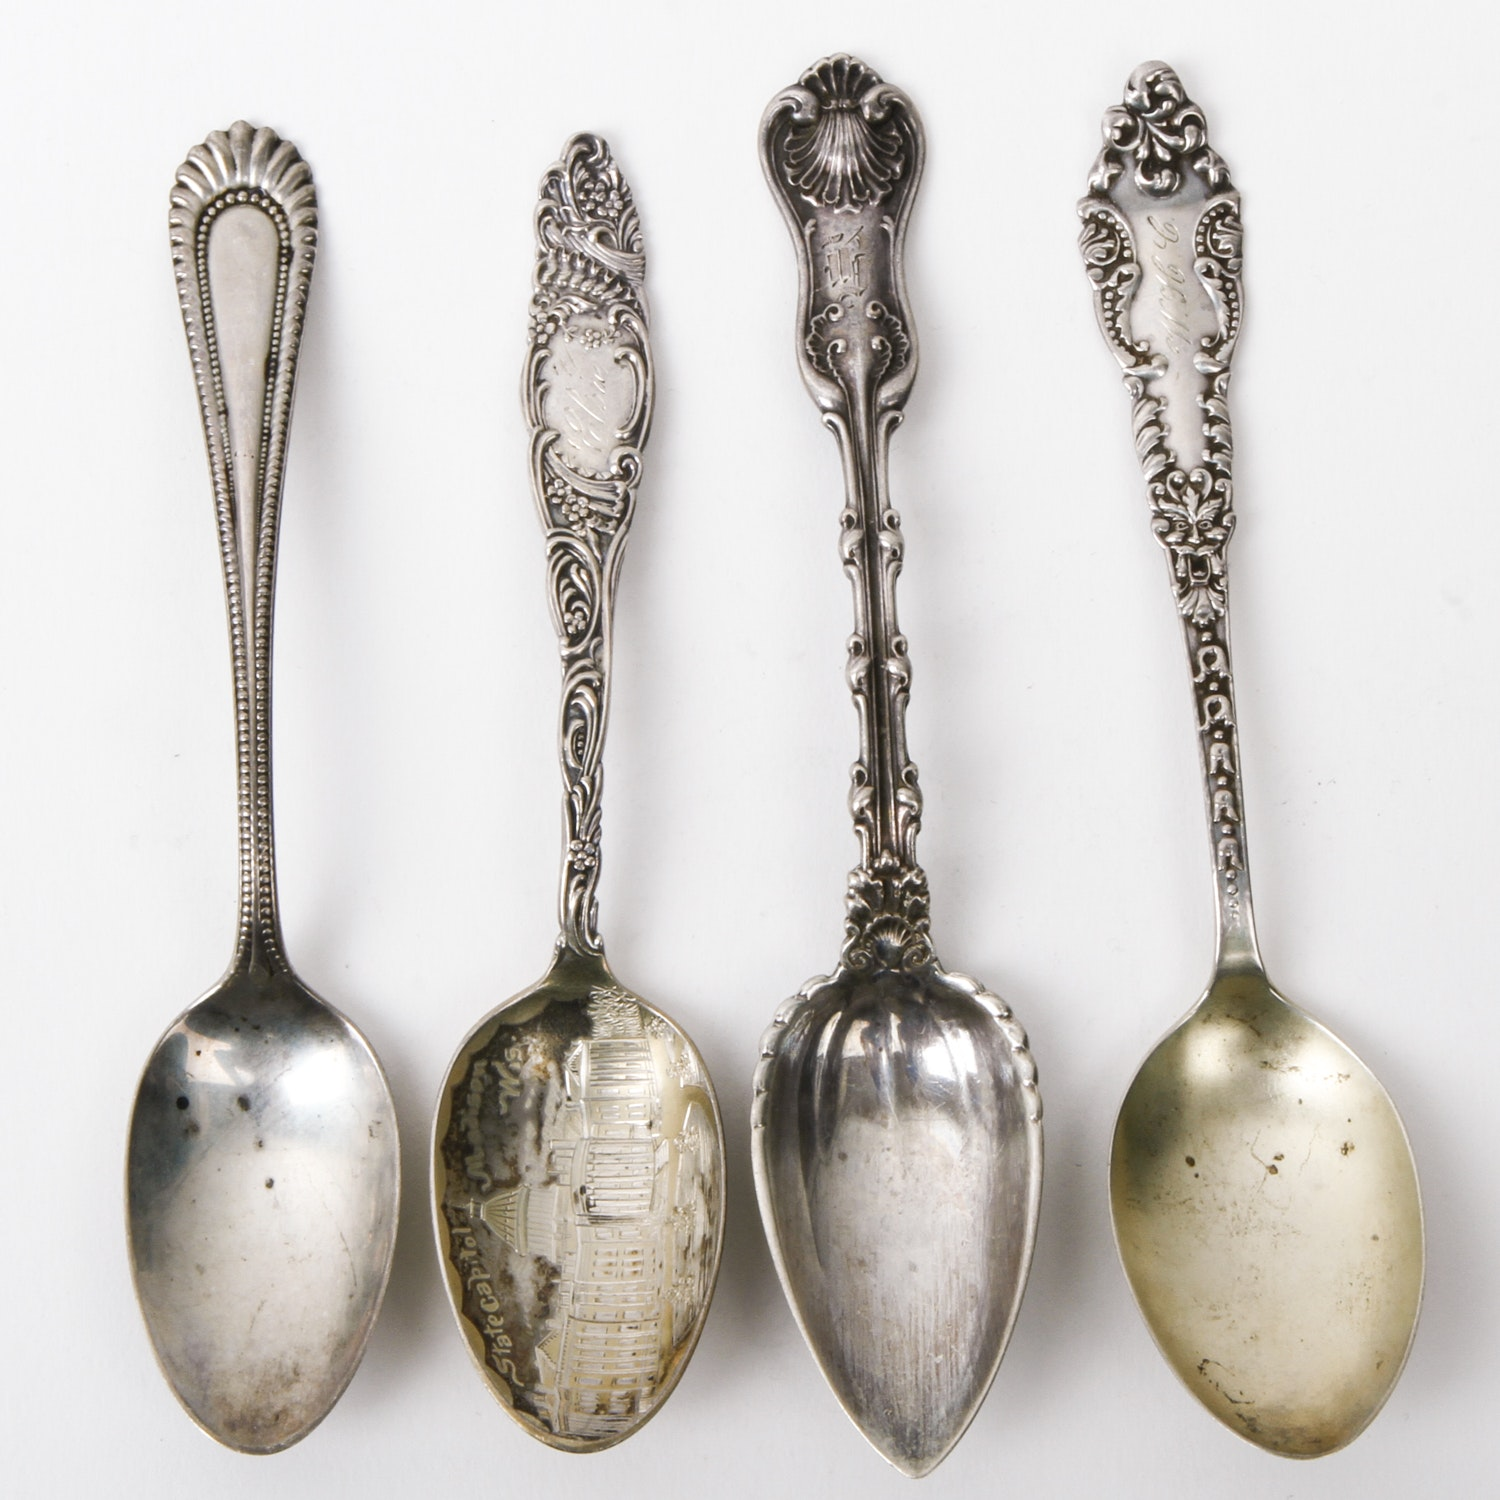 Four Antique Sterling Silver Demitasse Spoons